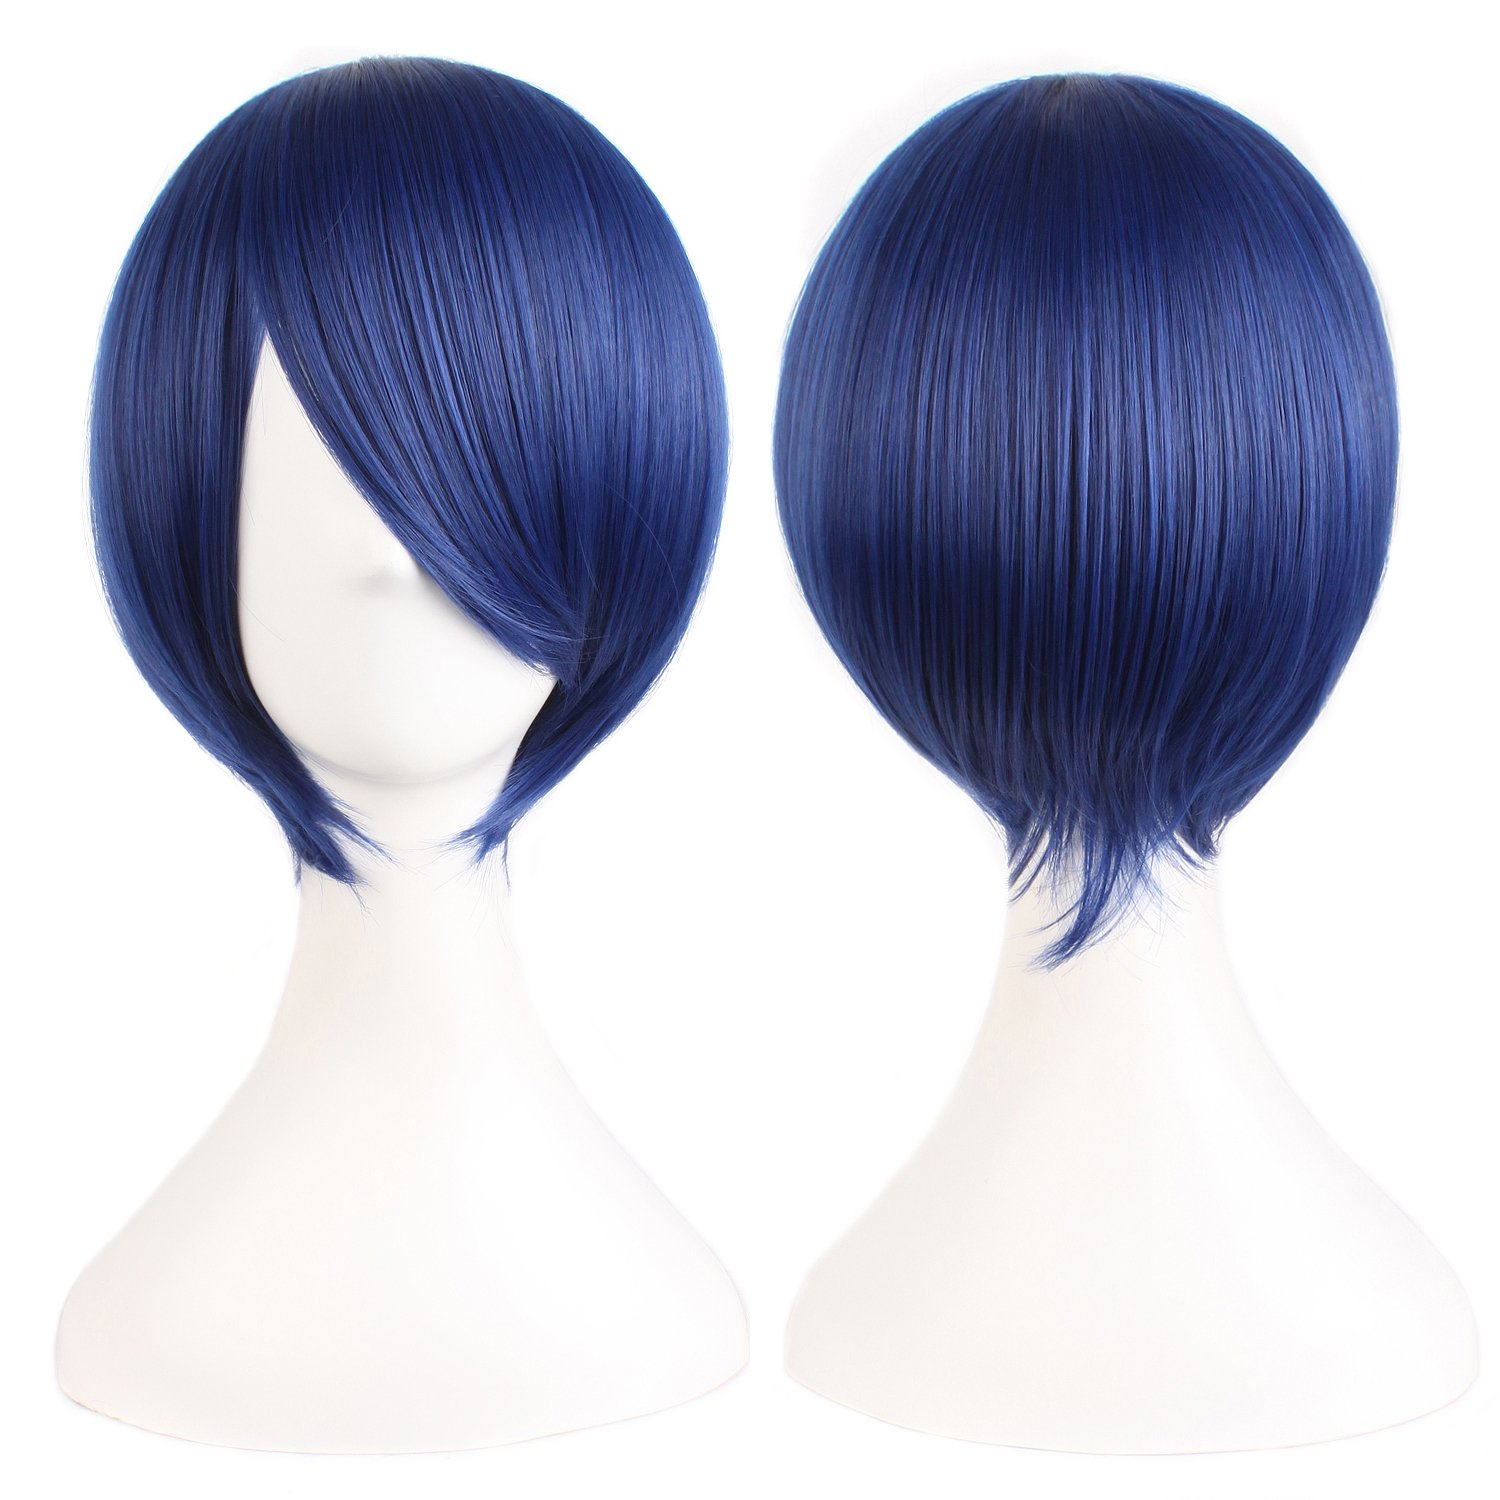 MapofBeauty 12''/30cm Short Straight Cosplay Costume Wig Party Wig (Mixed Blue) by MapofBeauty (Image #2)